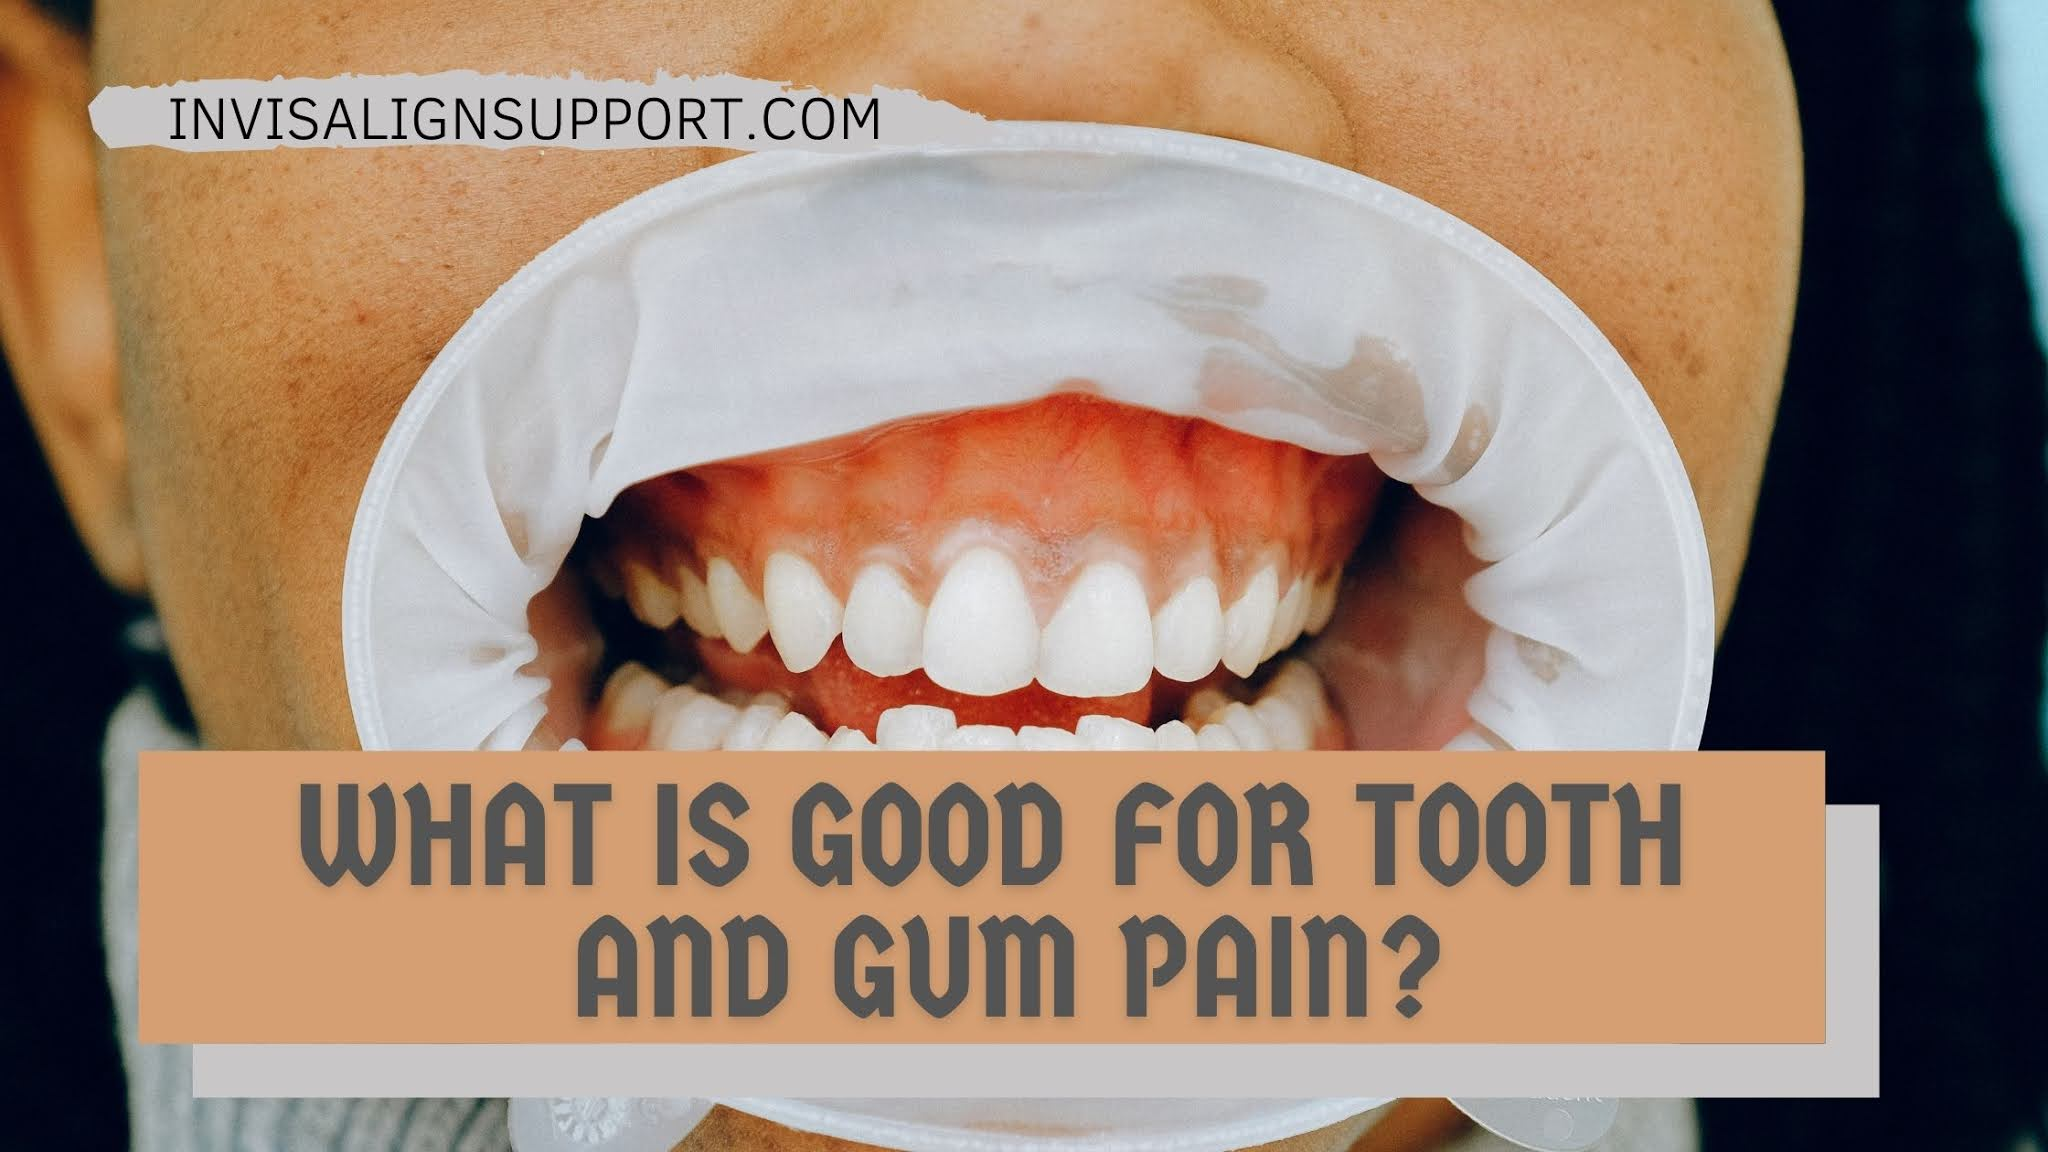 What Is Good For Tooth and Gum Pain?